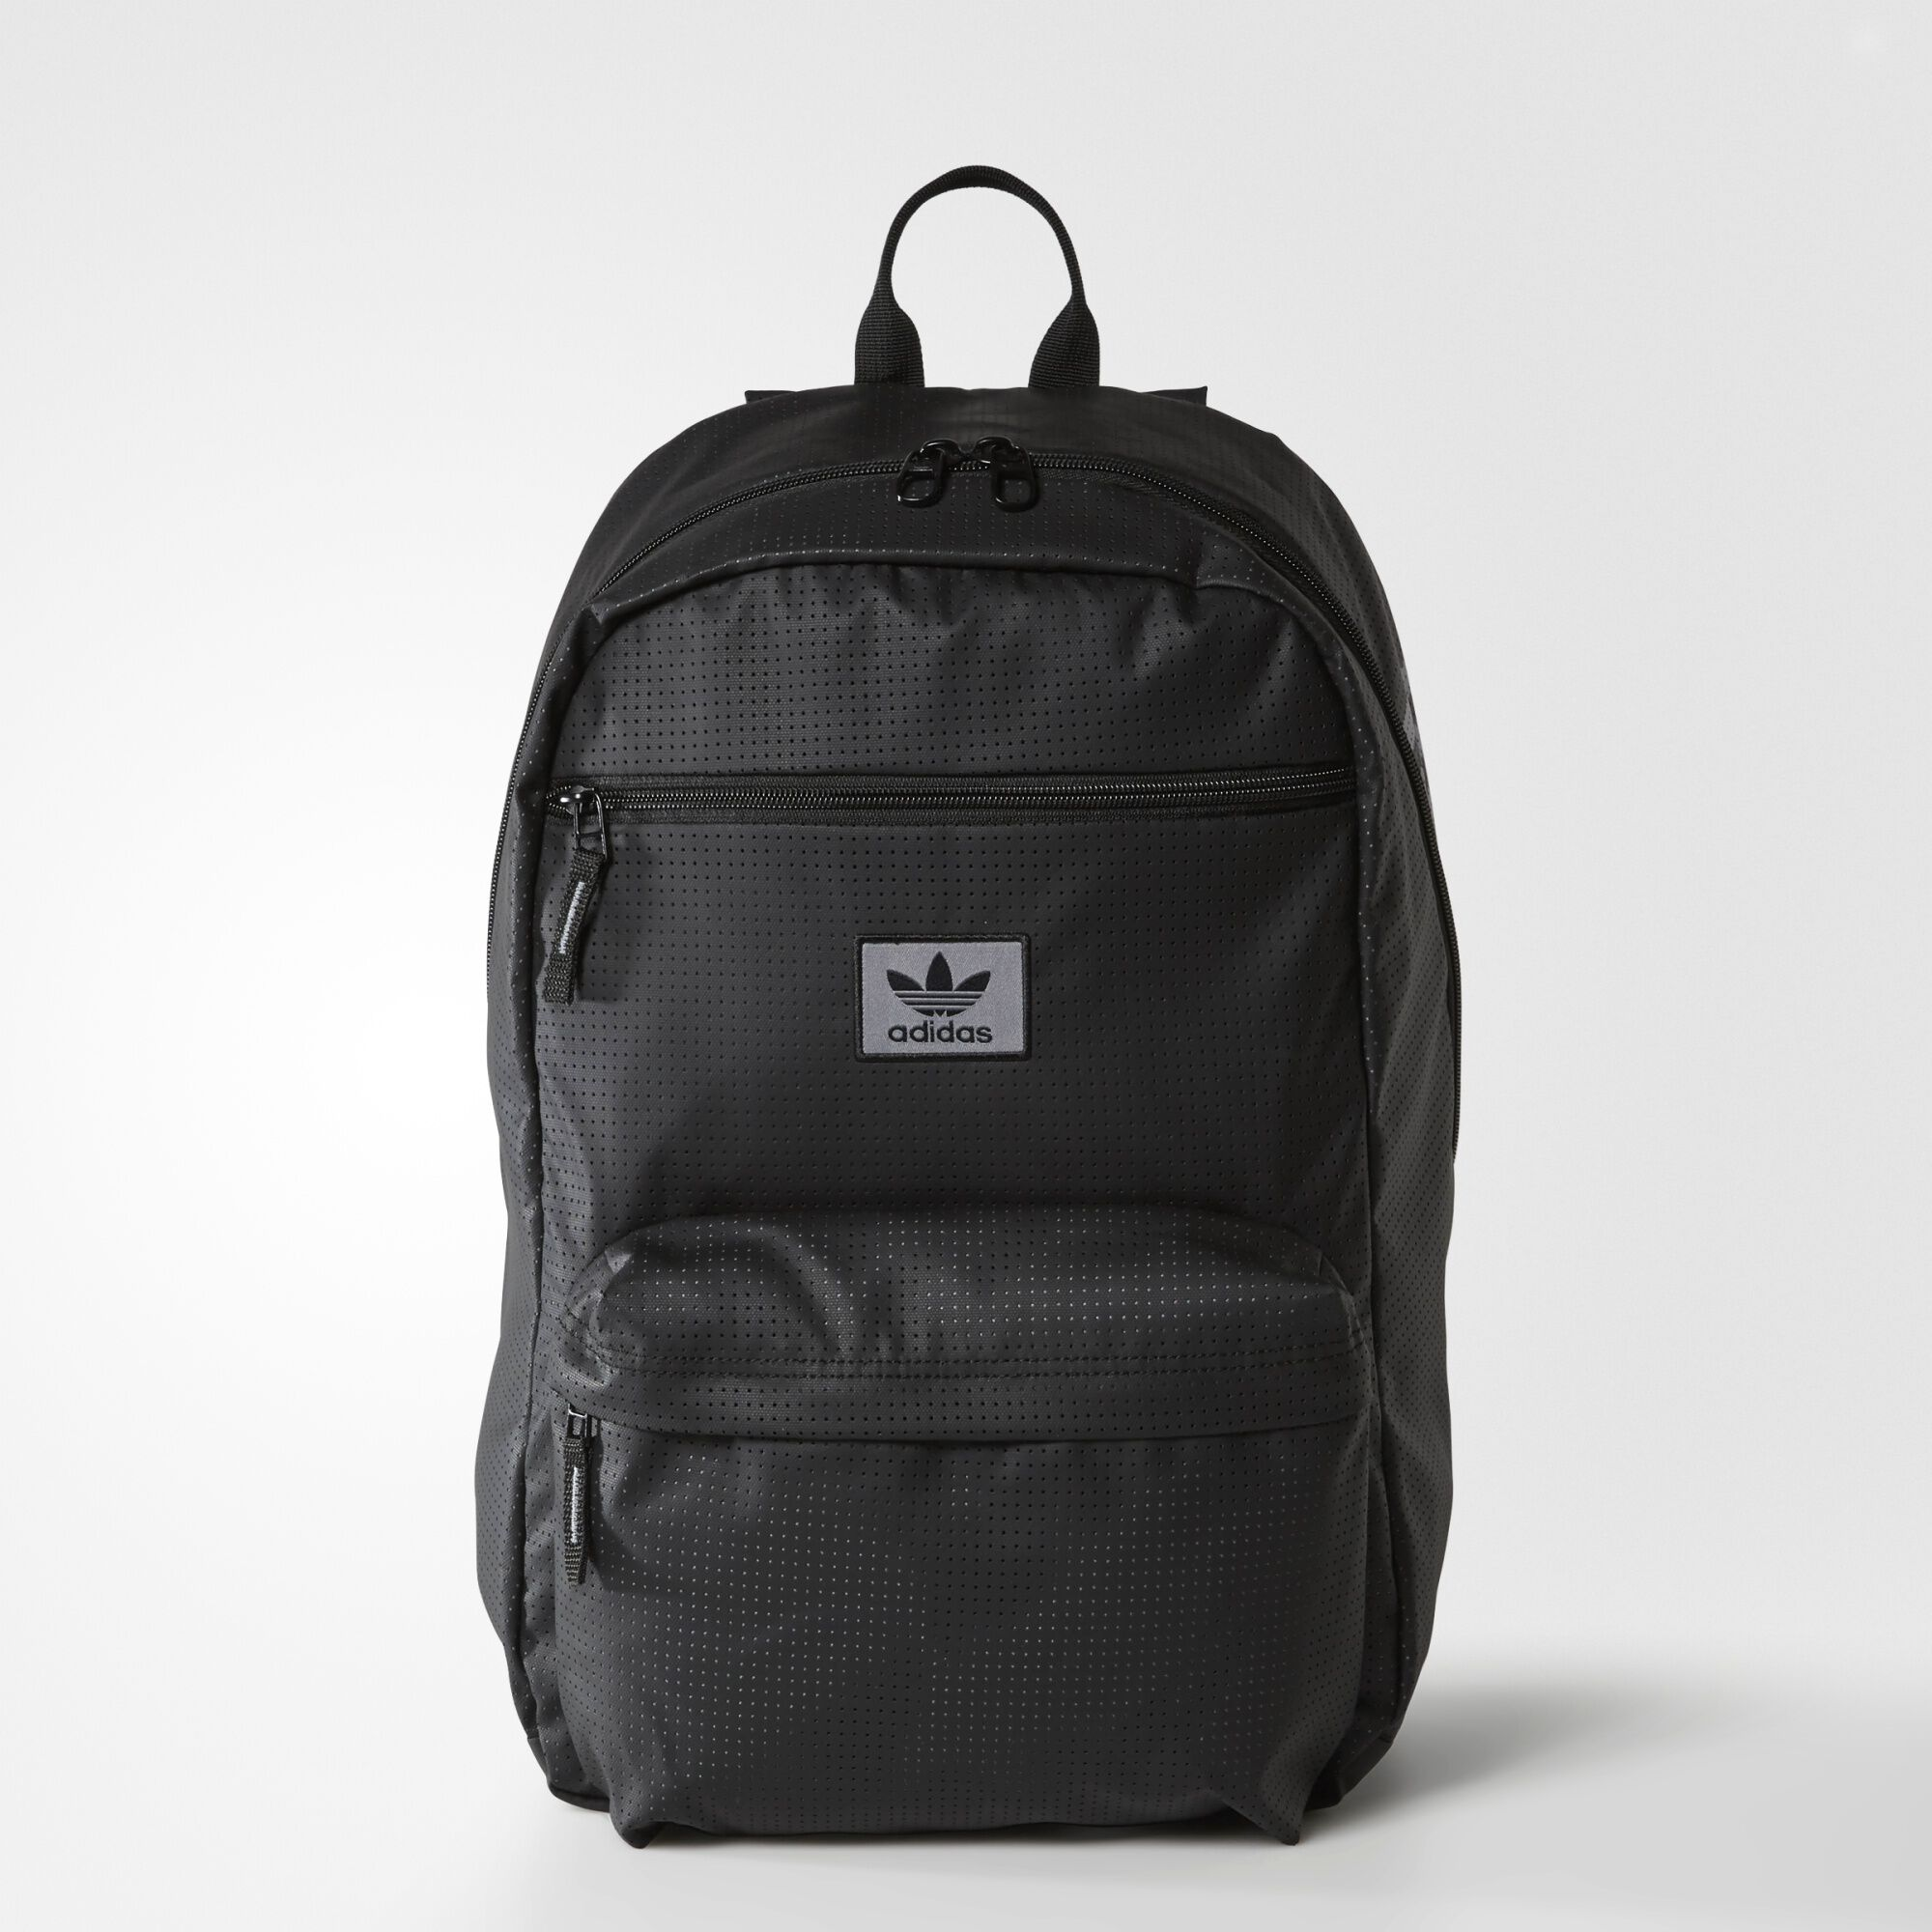 766a2baddc7 Buy adidas bag backpack   OFF74% Discounted